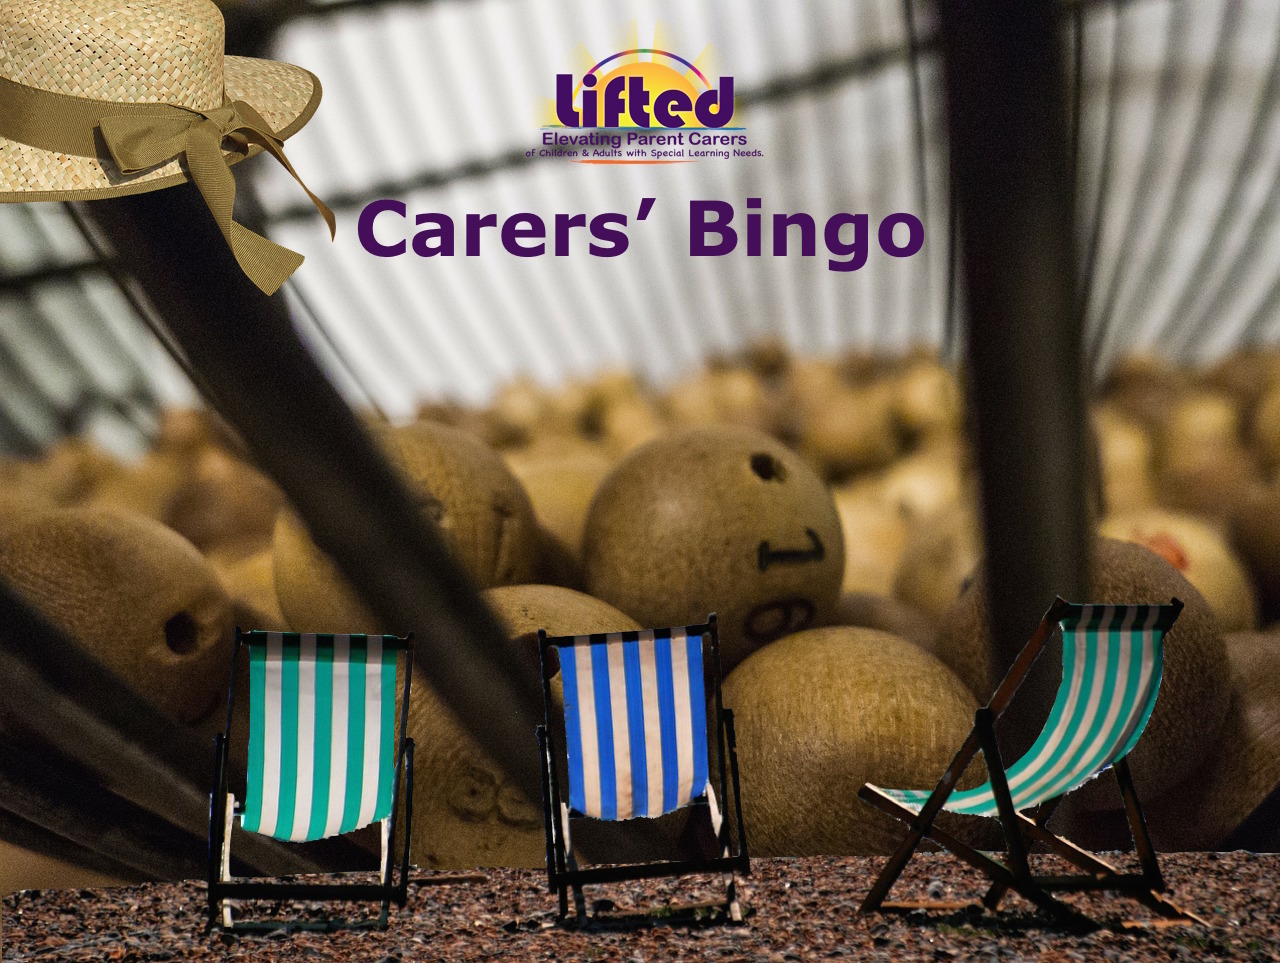 Teaser poster for Lifted Carers' Summer Bingo 2018 | background image: bingo balls; foreground images: deck chairs and summer hat | original images from pixabay.com